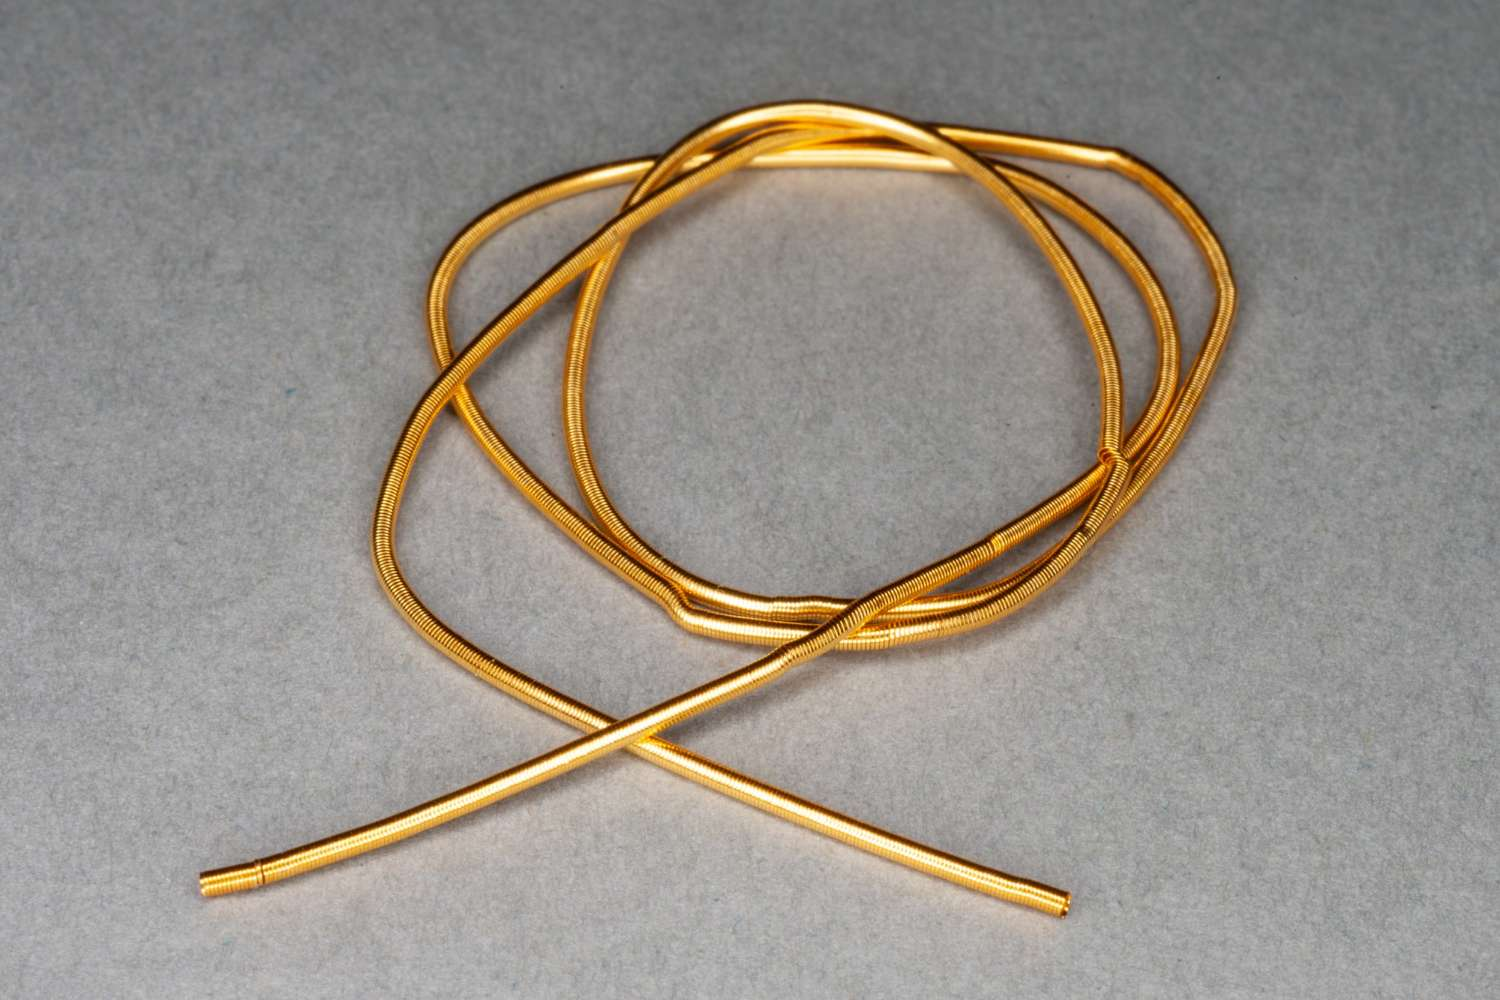 Gold Plated Gimp/French Wire 25cm